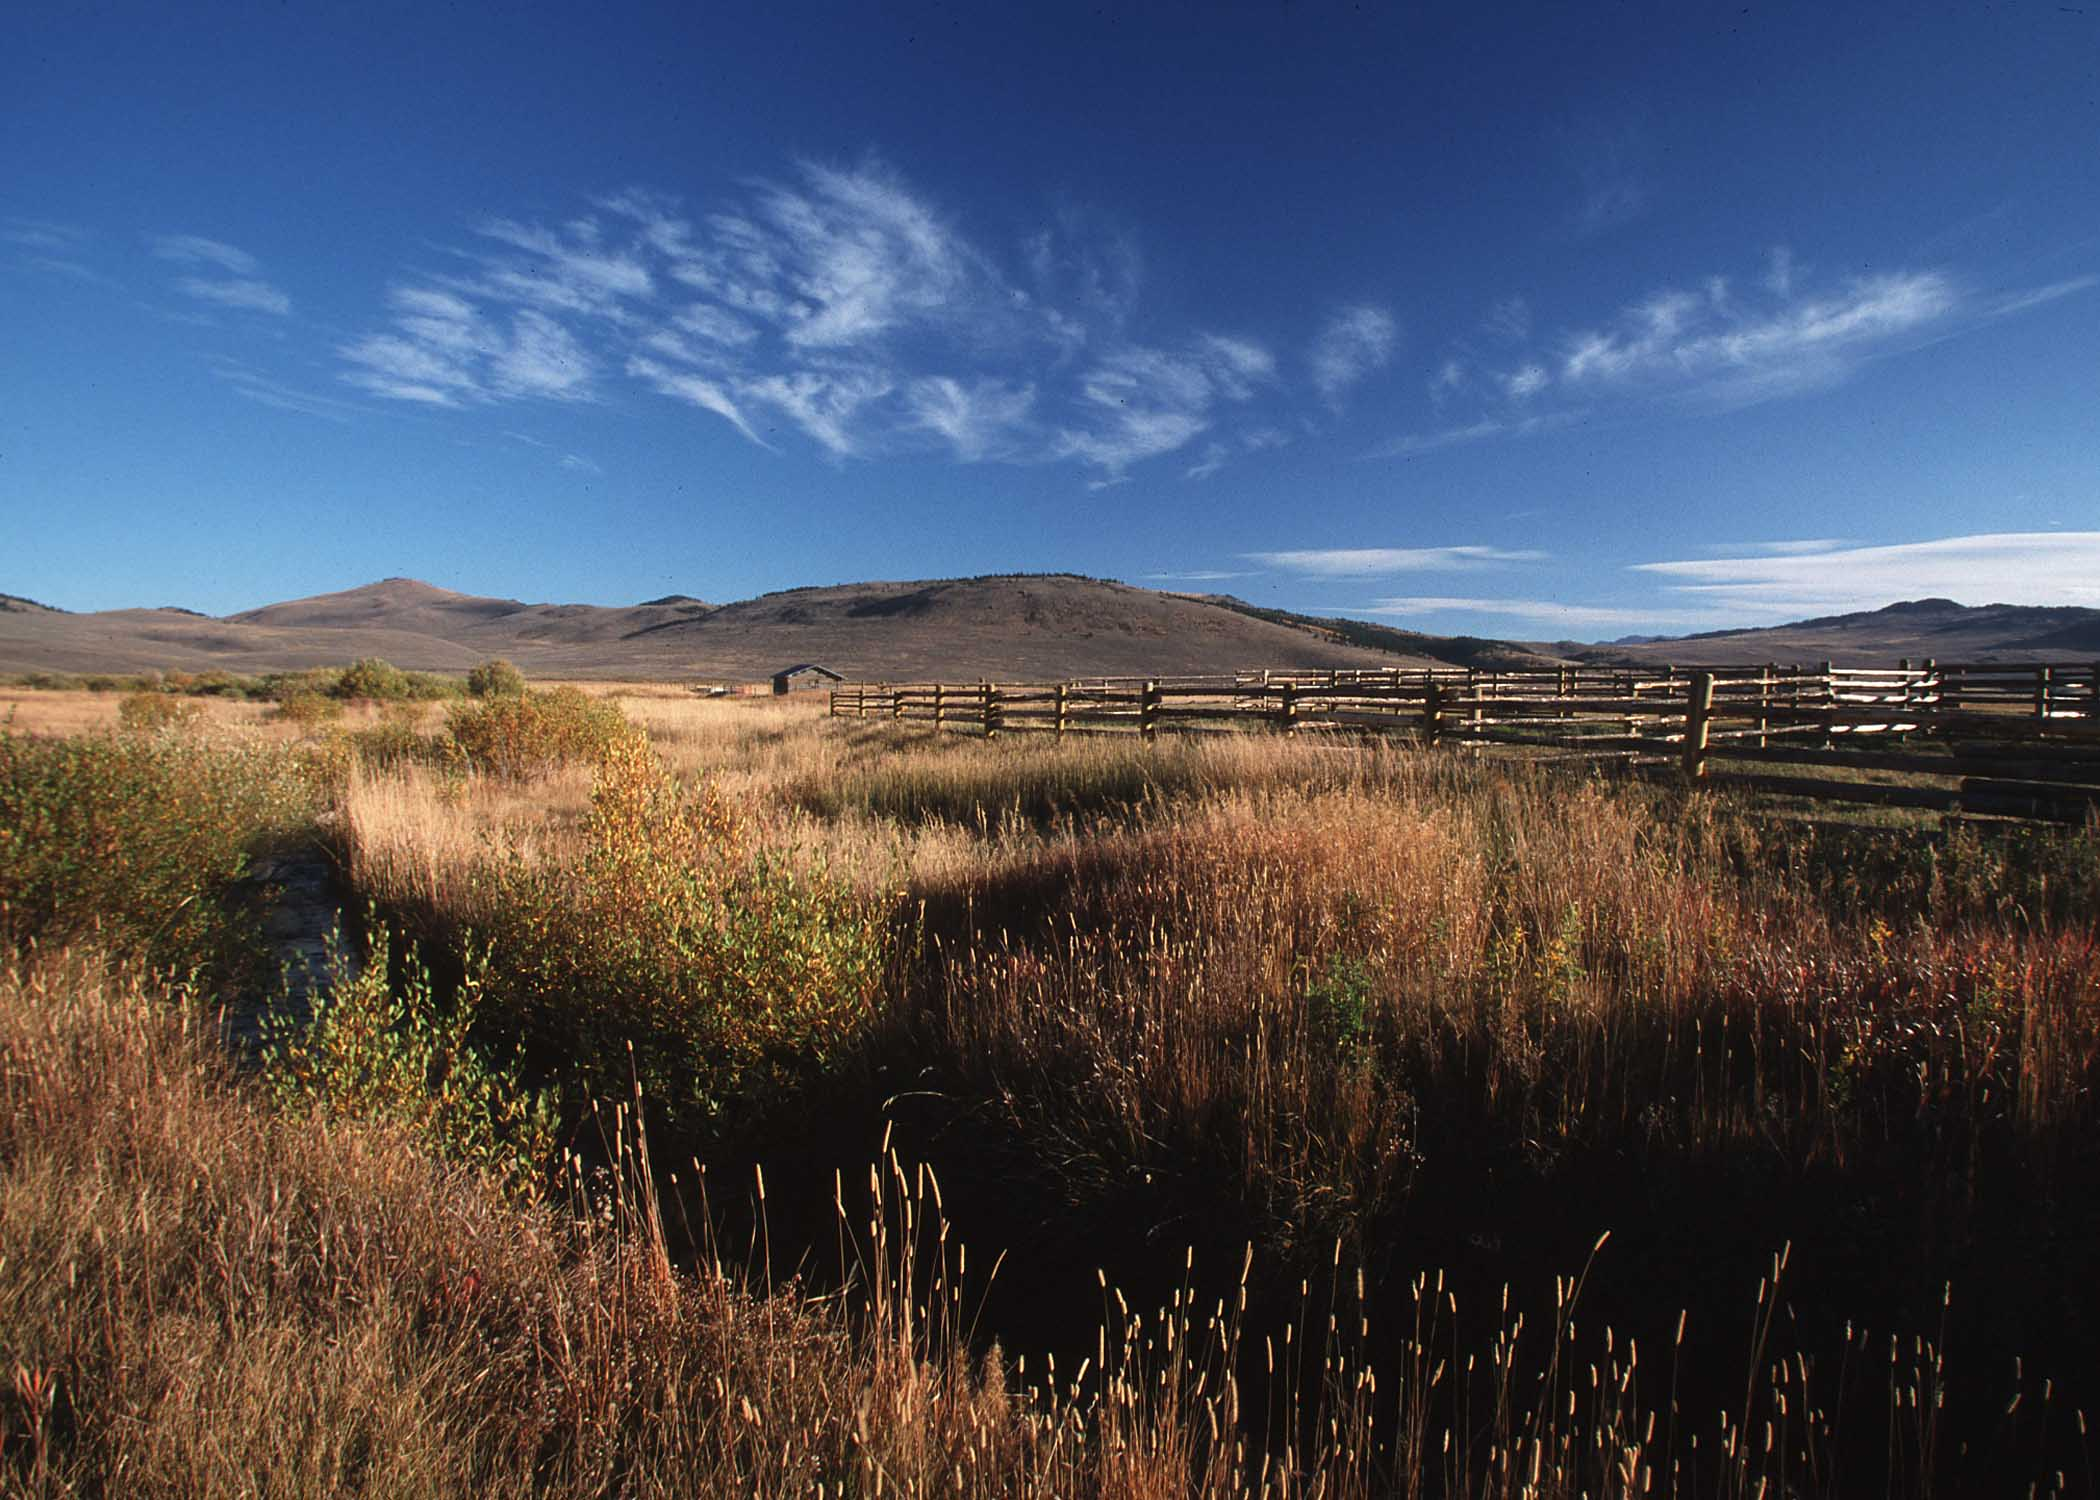 NRCS rangeland photo